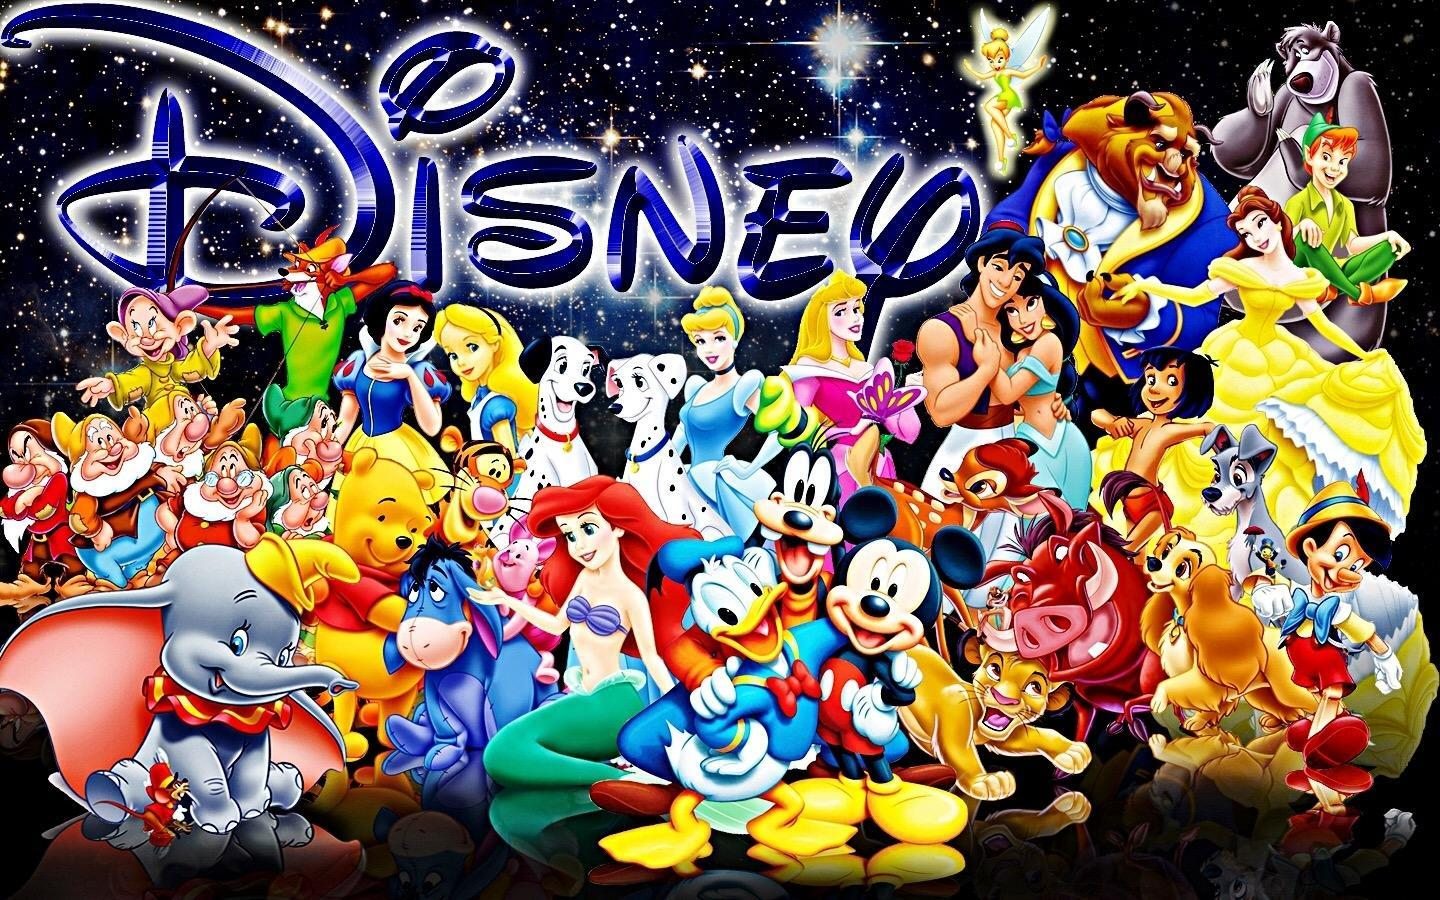 Who is your favorite Disney character?